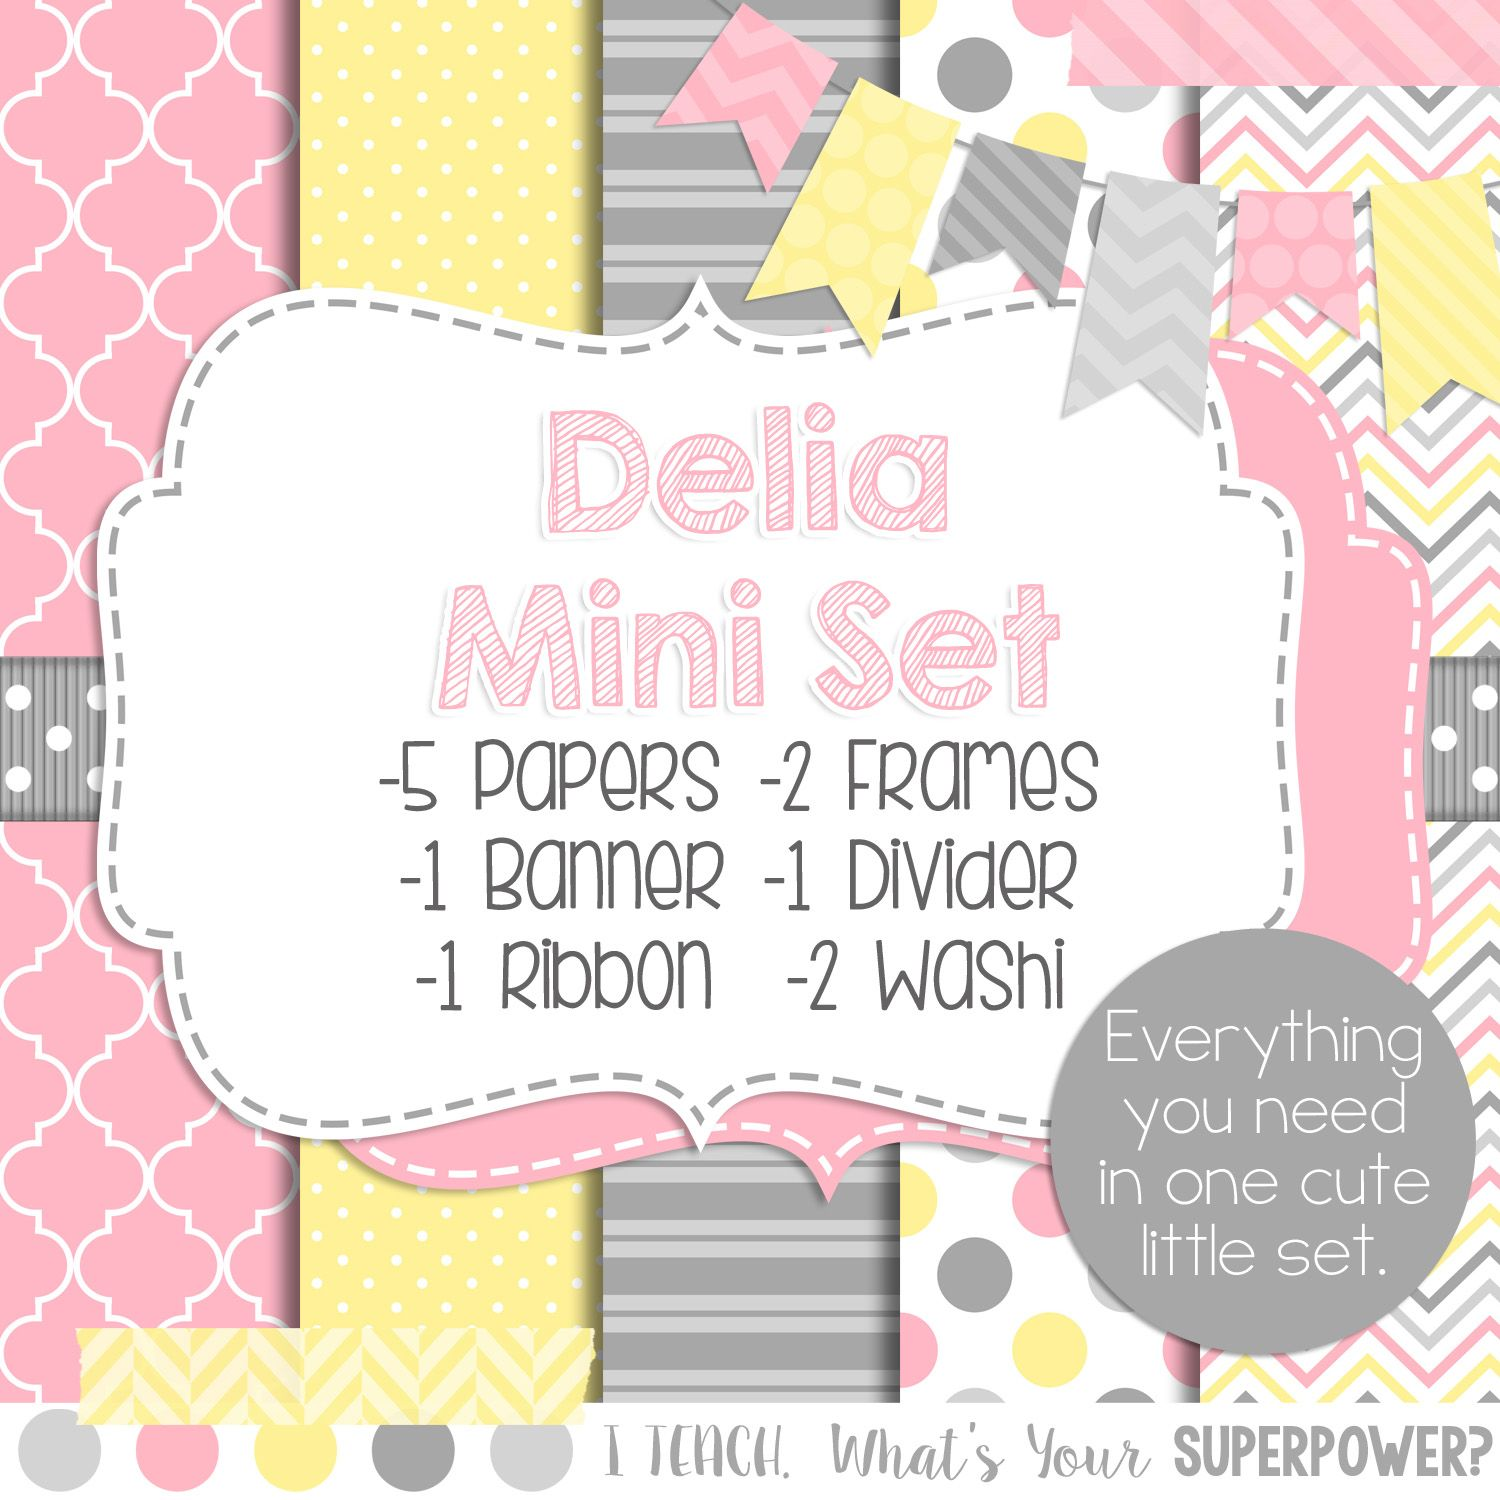 Digital Paper and Frame Delia Mini Set. Pink, yellow, and gray.